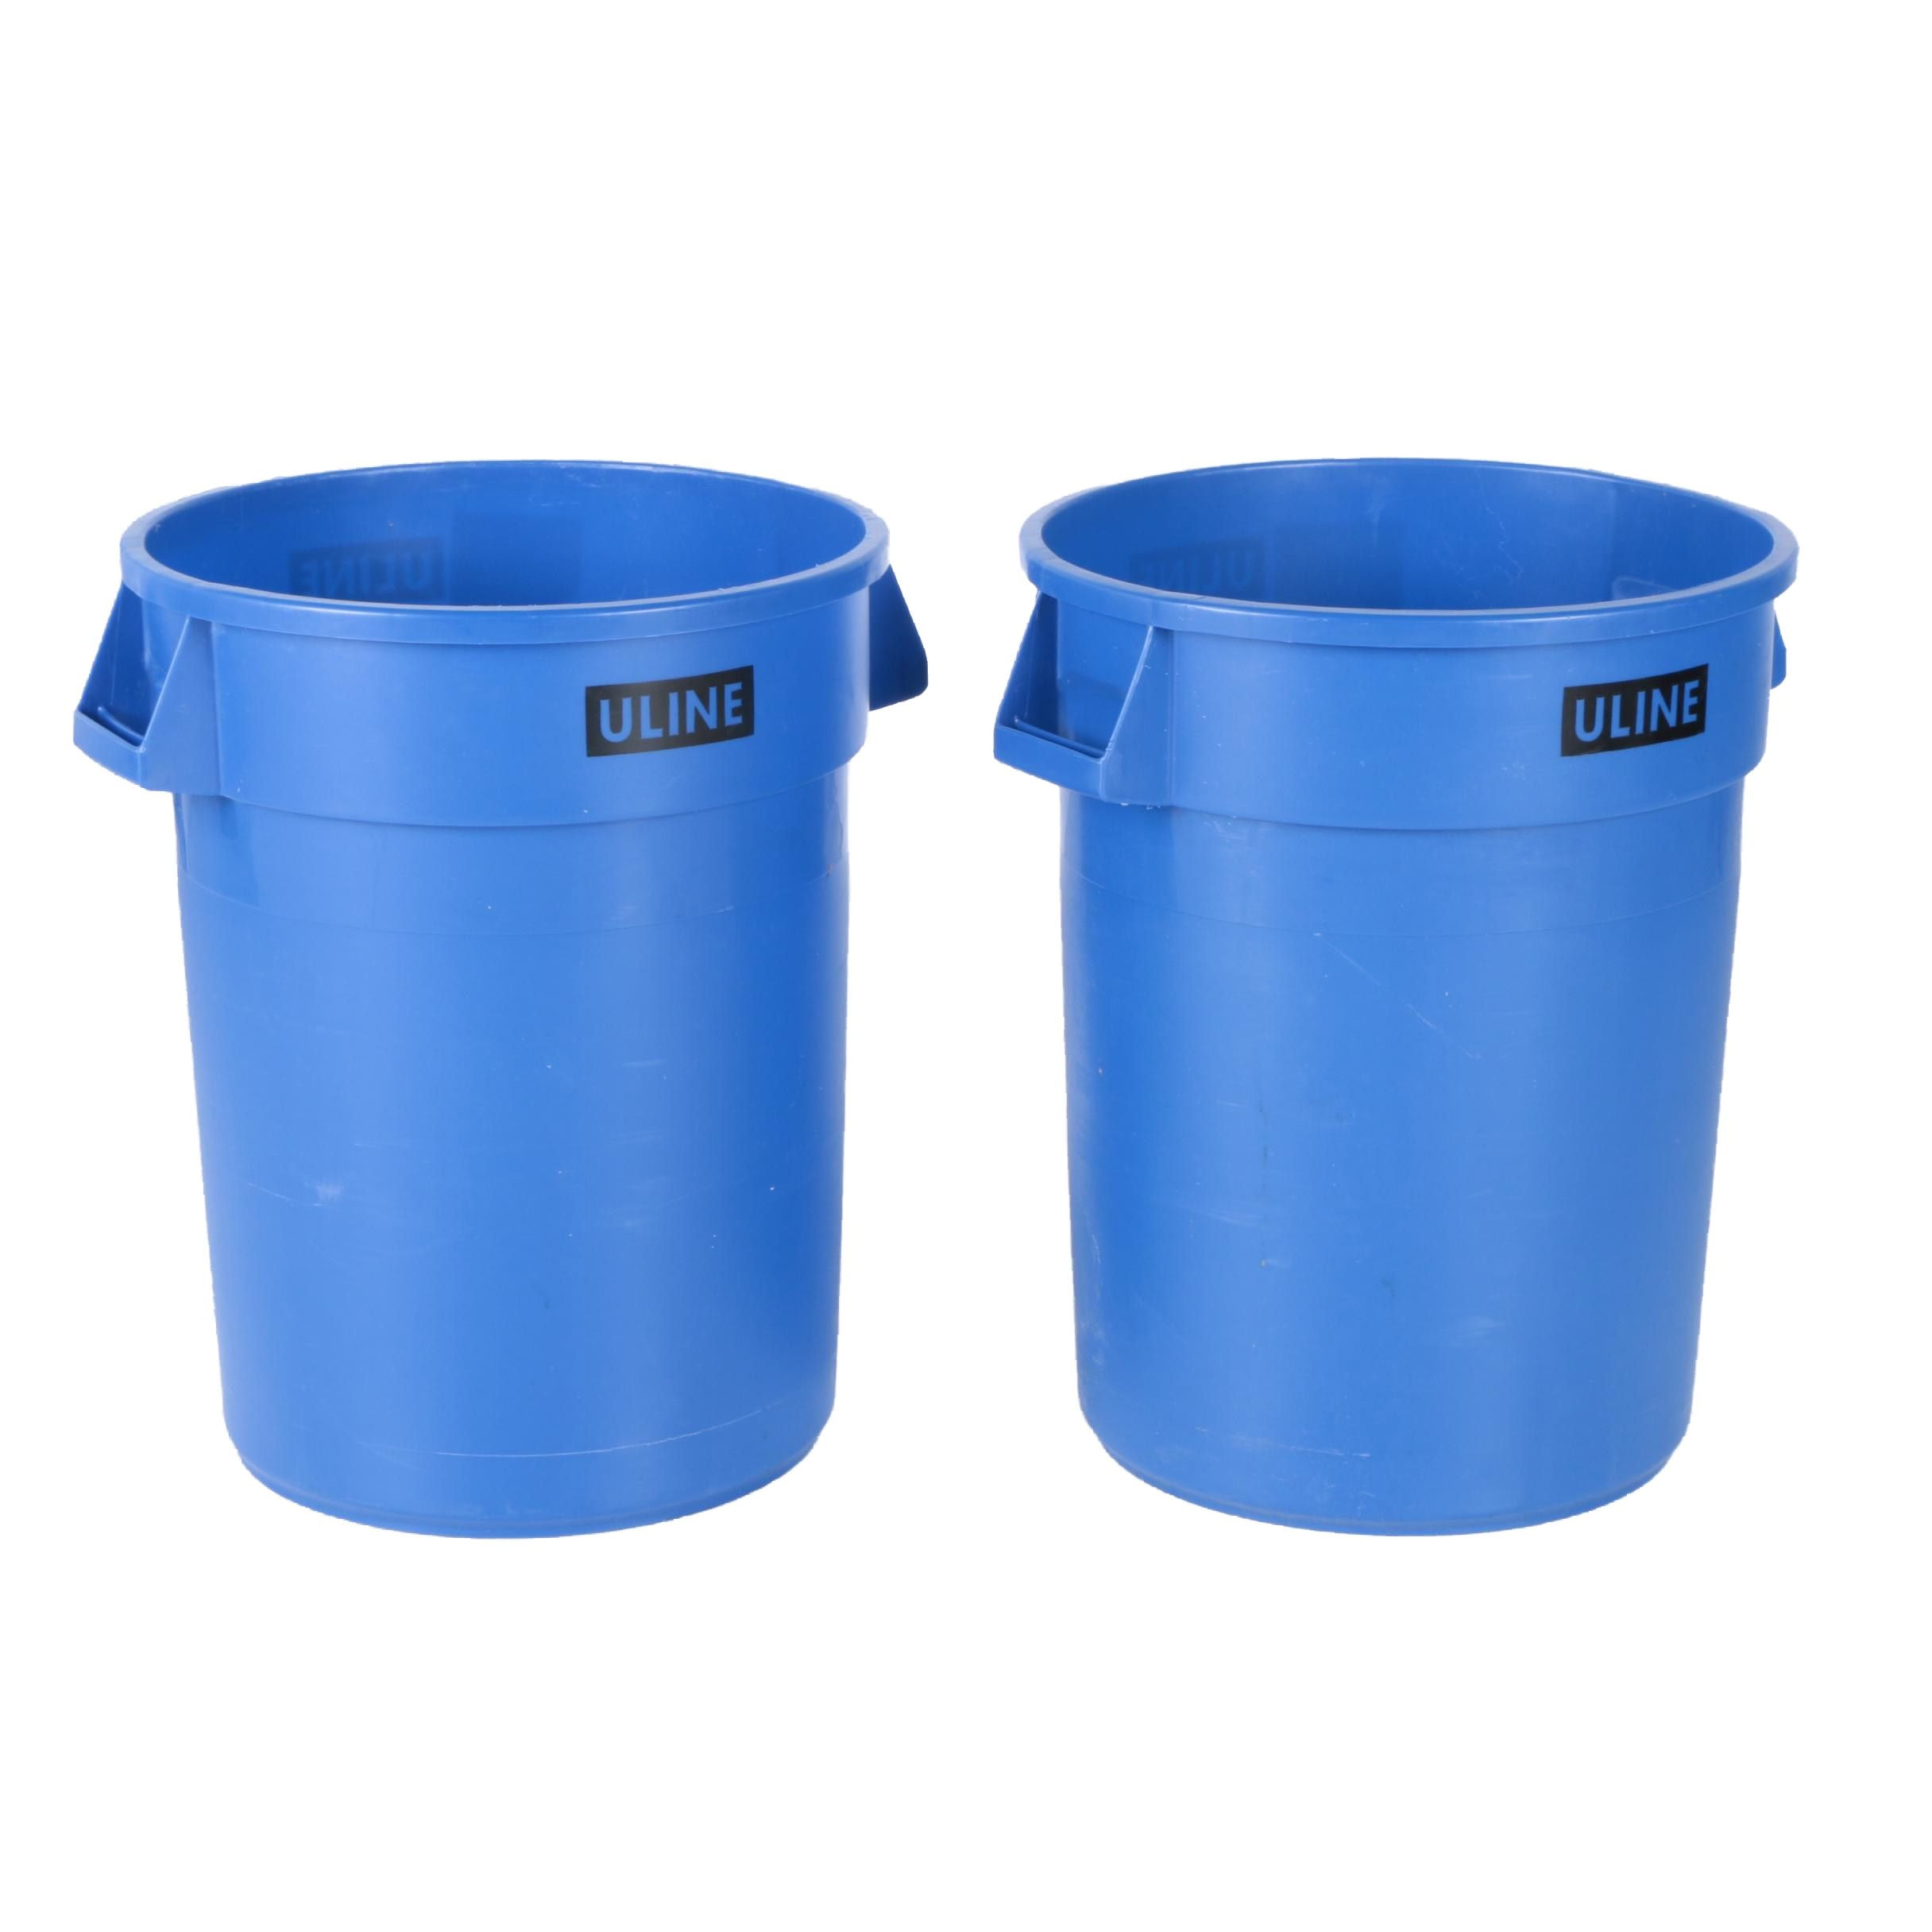 ULINE Industrial Trash Cans